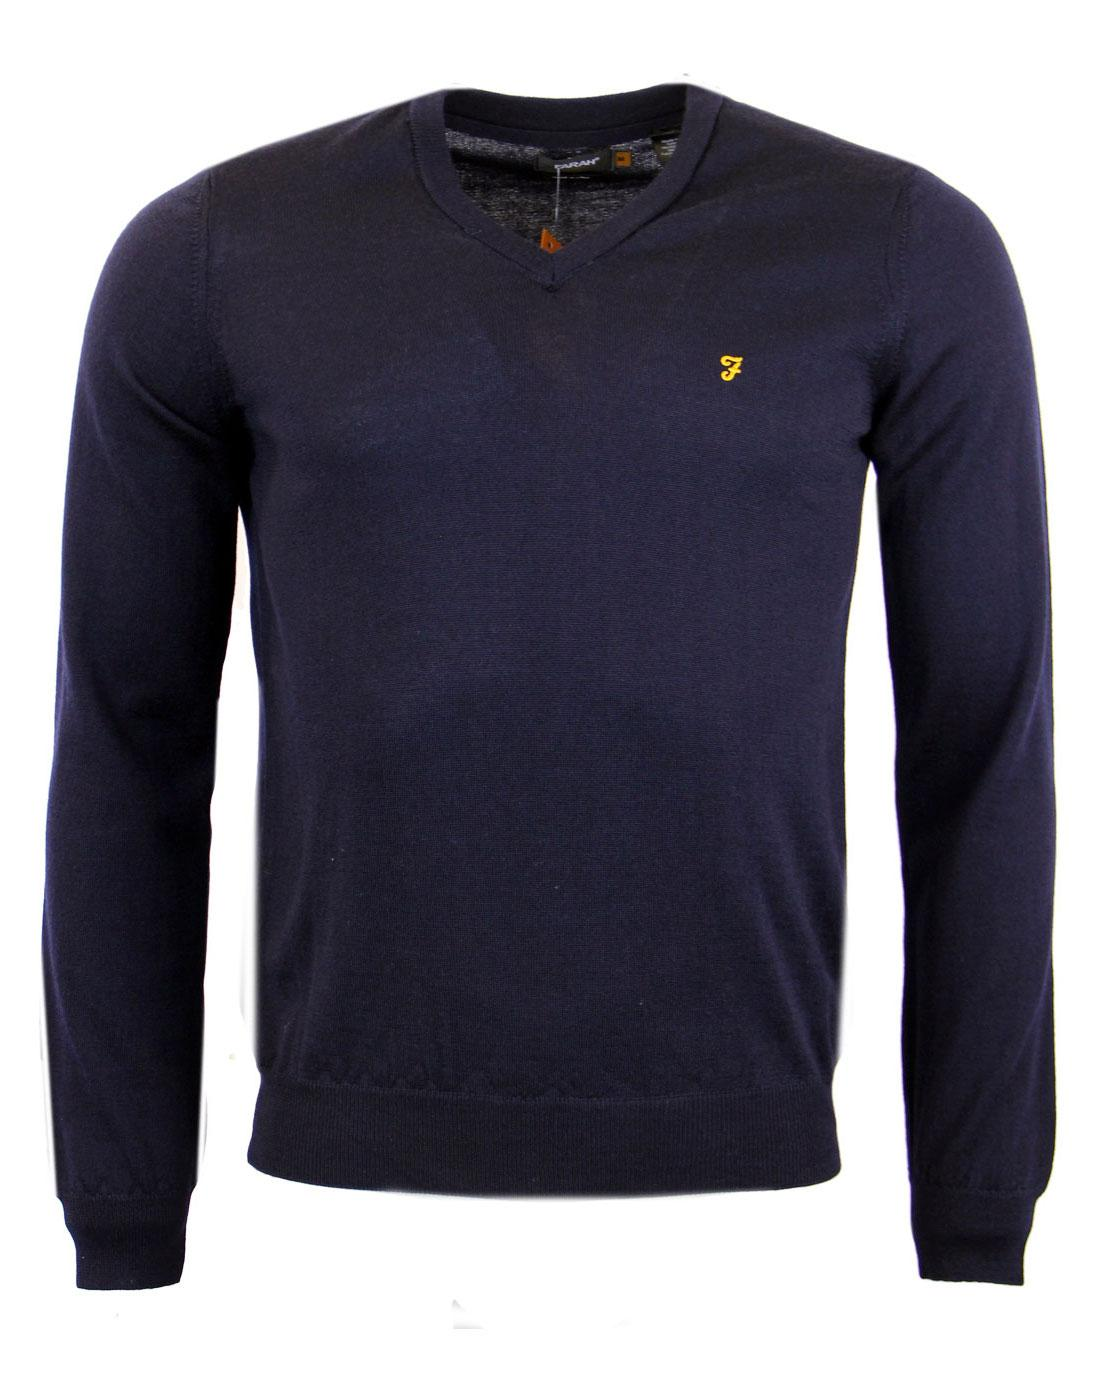 Devlin FARAH Retro Merino V Neck Sweater  (N)